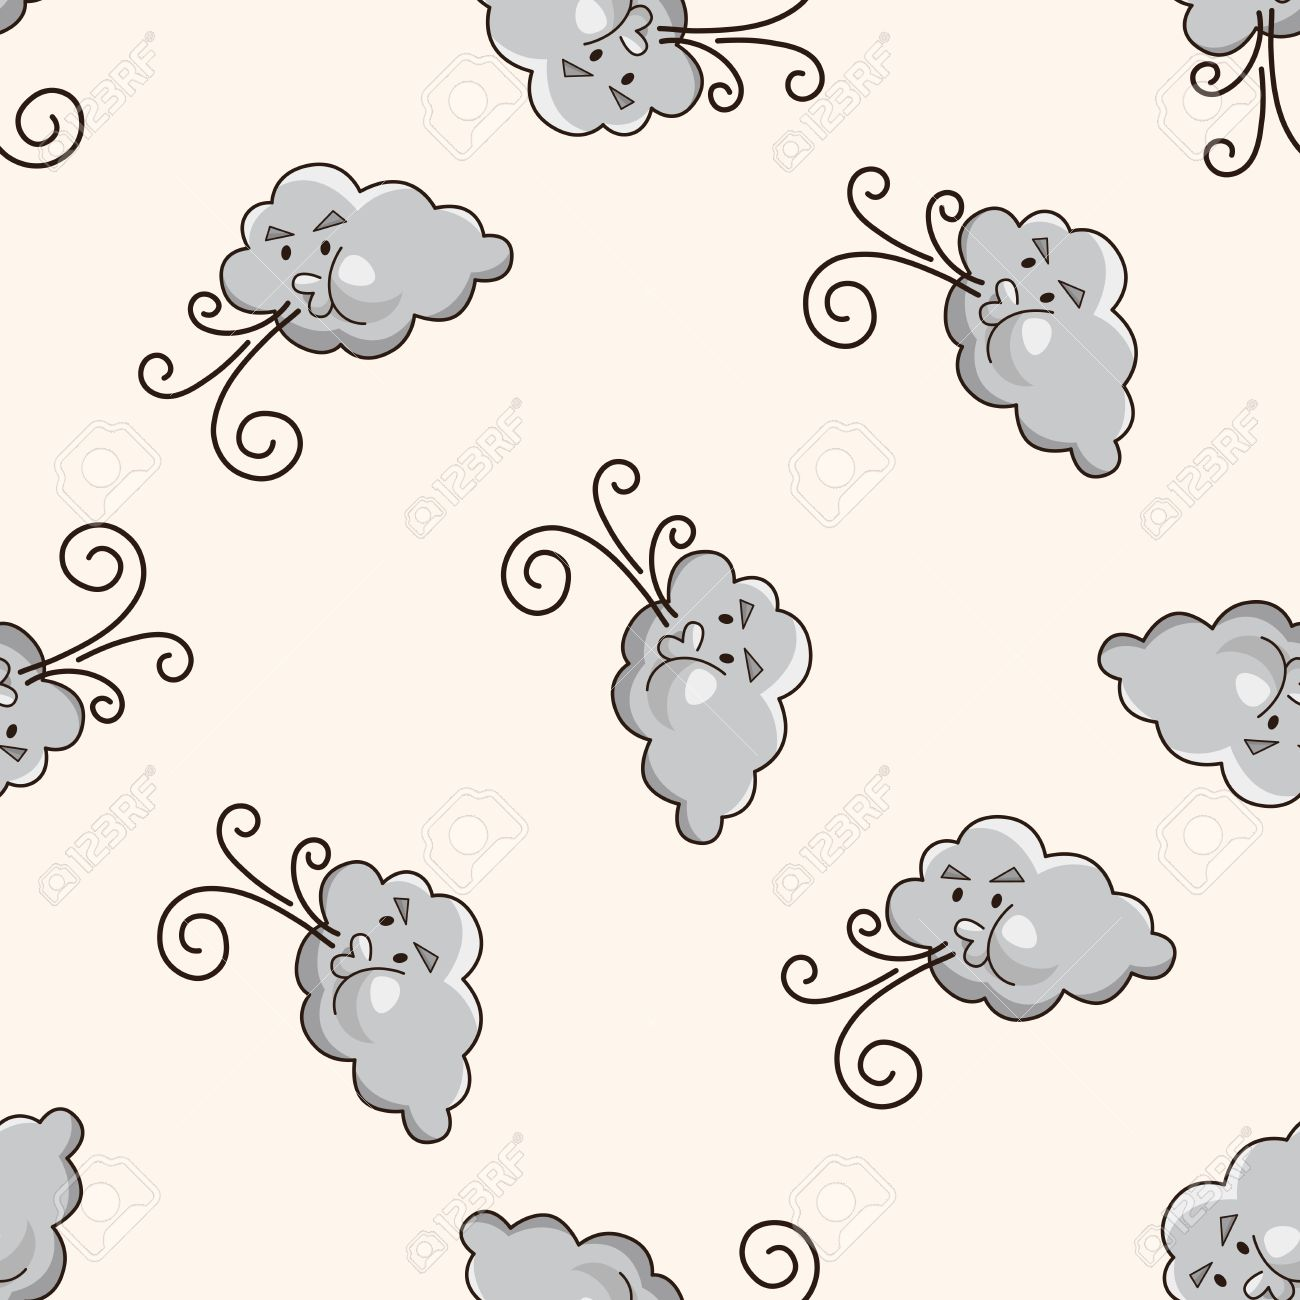 weather cloudy day cartoon seamless pattern background stock